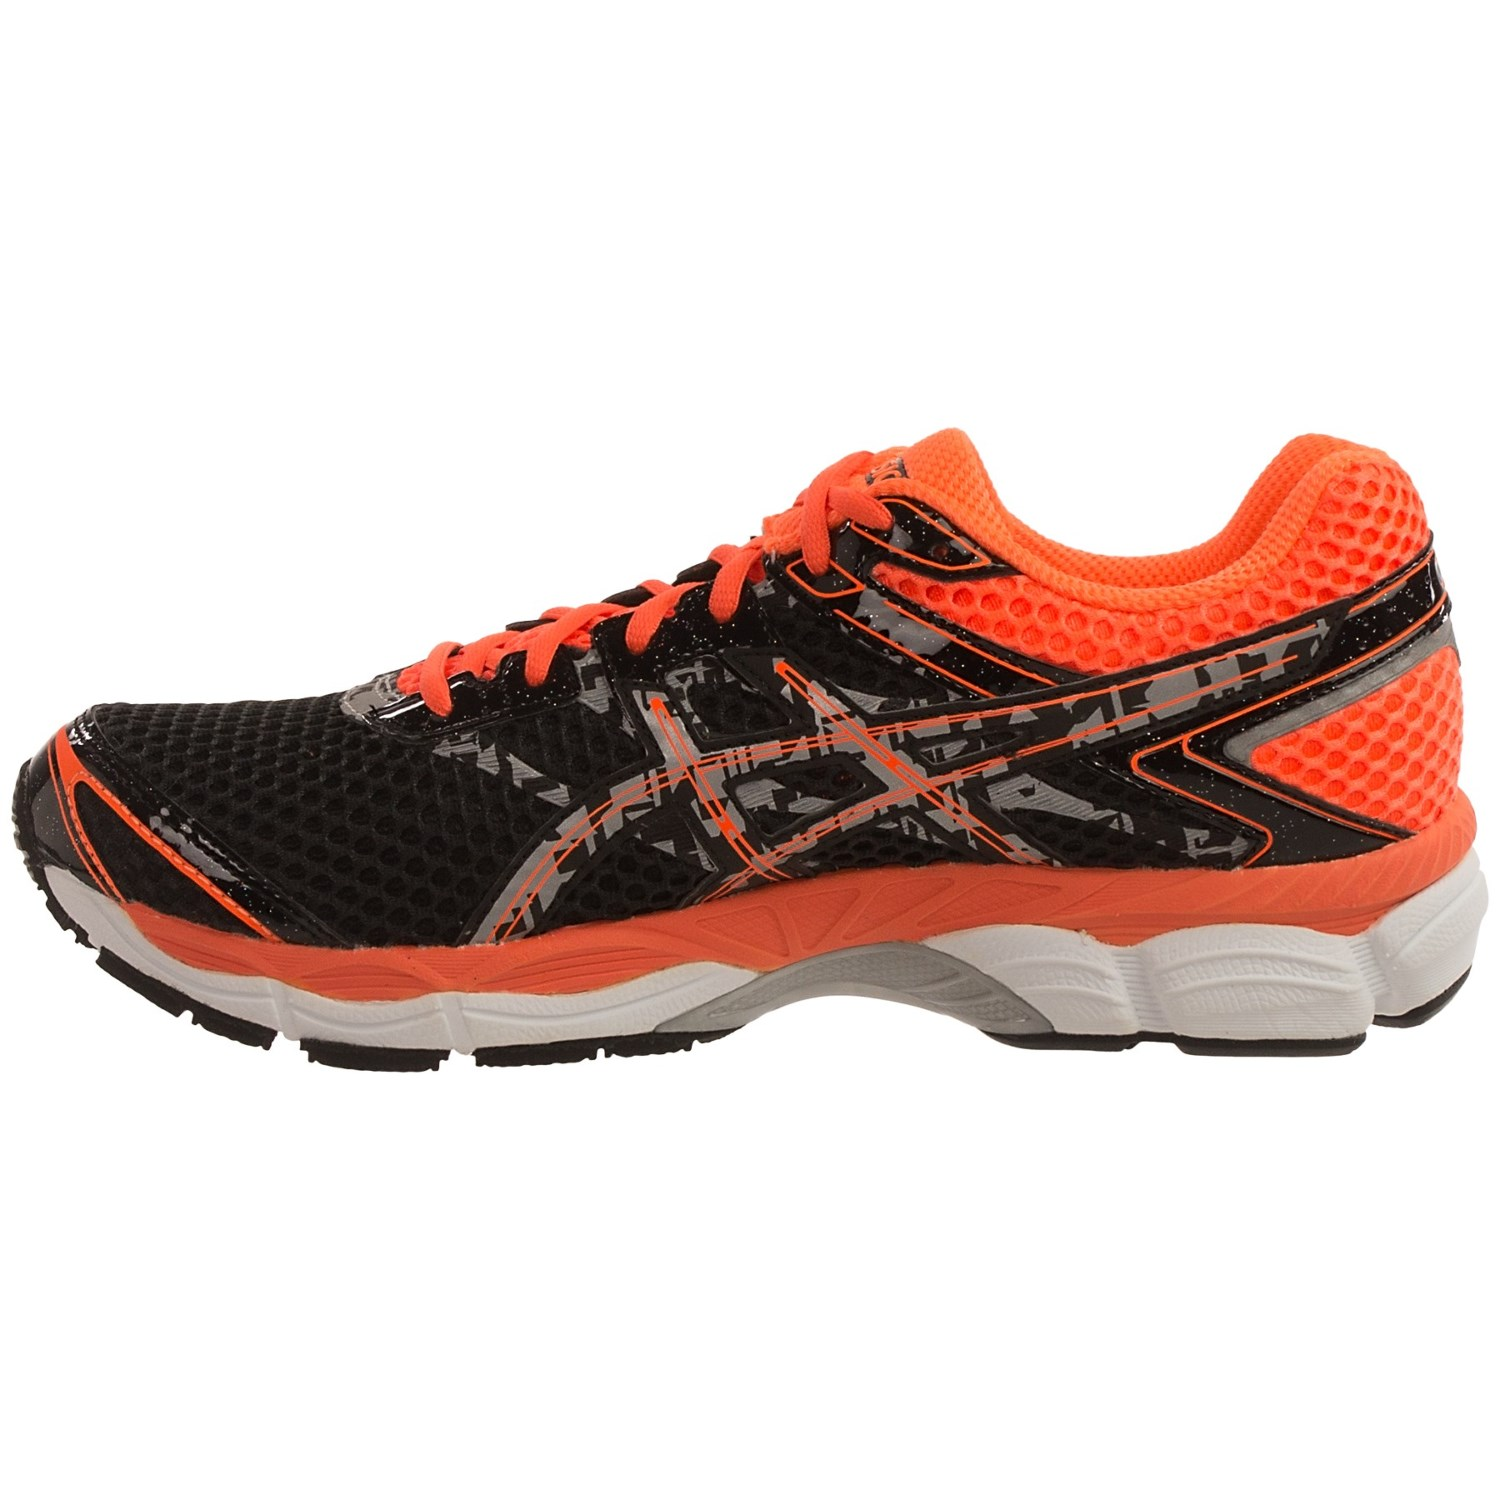 asics gel cumulus 16 lite show running shoes for men 9587x save 25. Black Bedroom Furniture Sets. Home Design Ideas